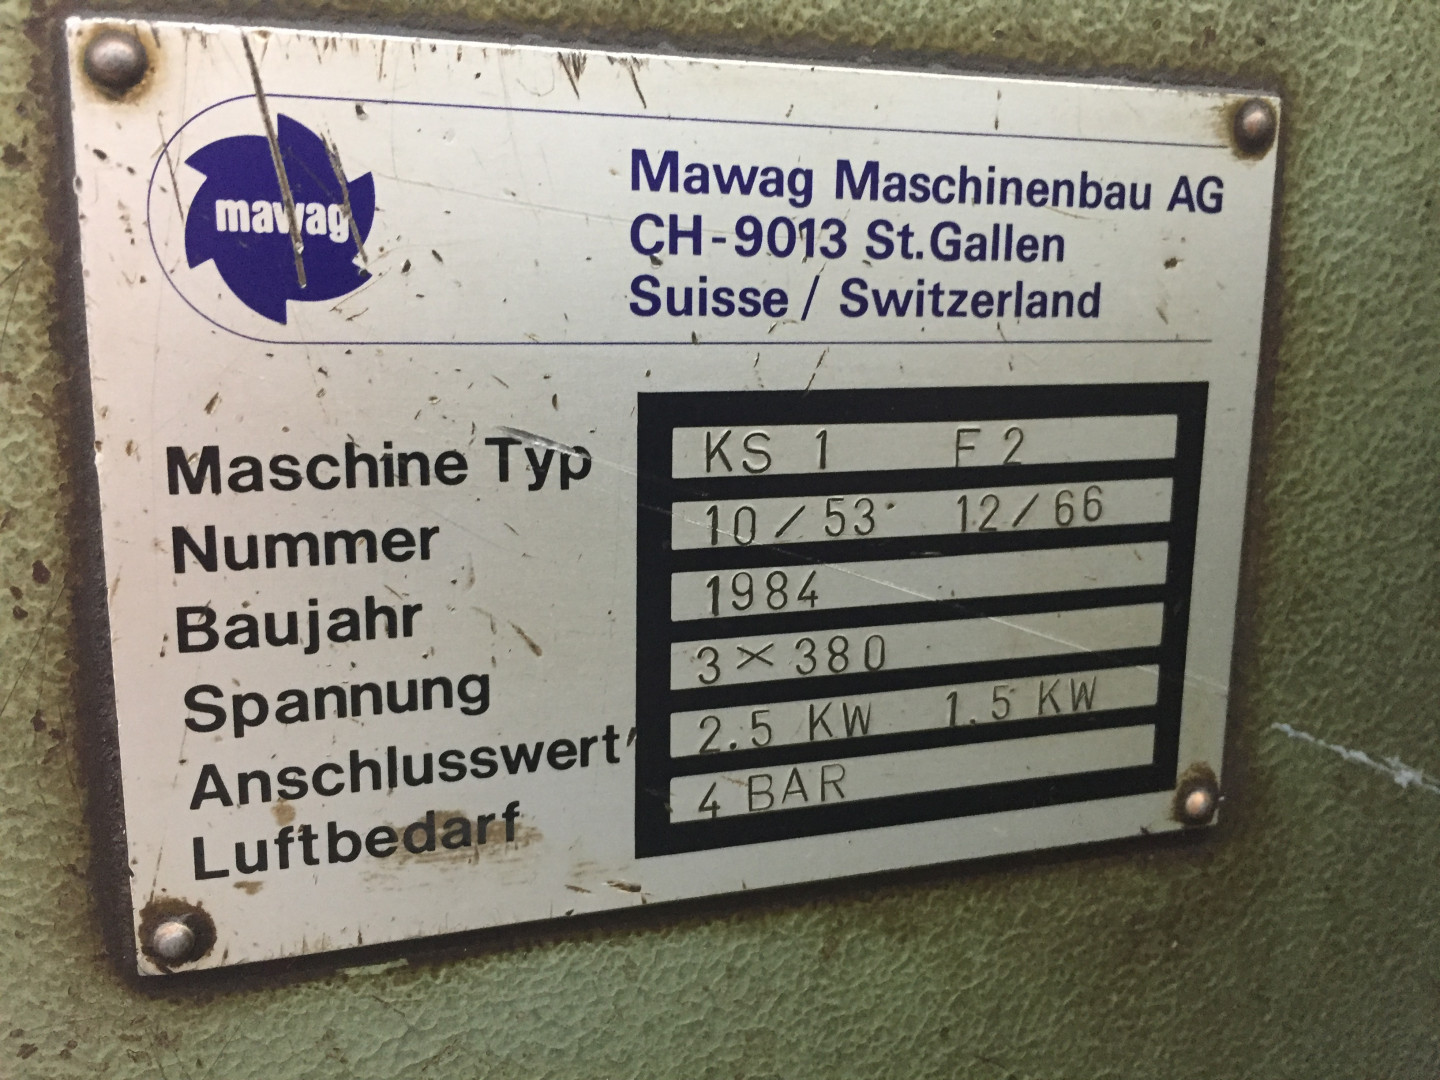 Mawag KS 1 F2 duplex slitter - sheet feeder